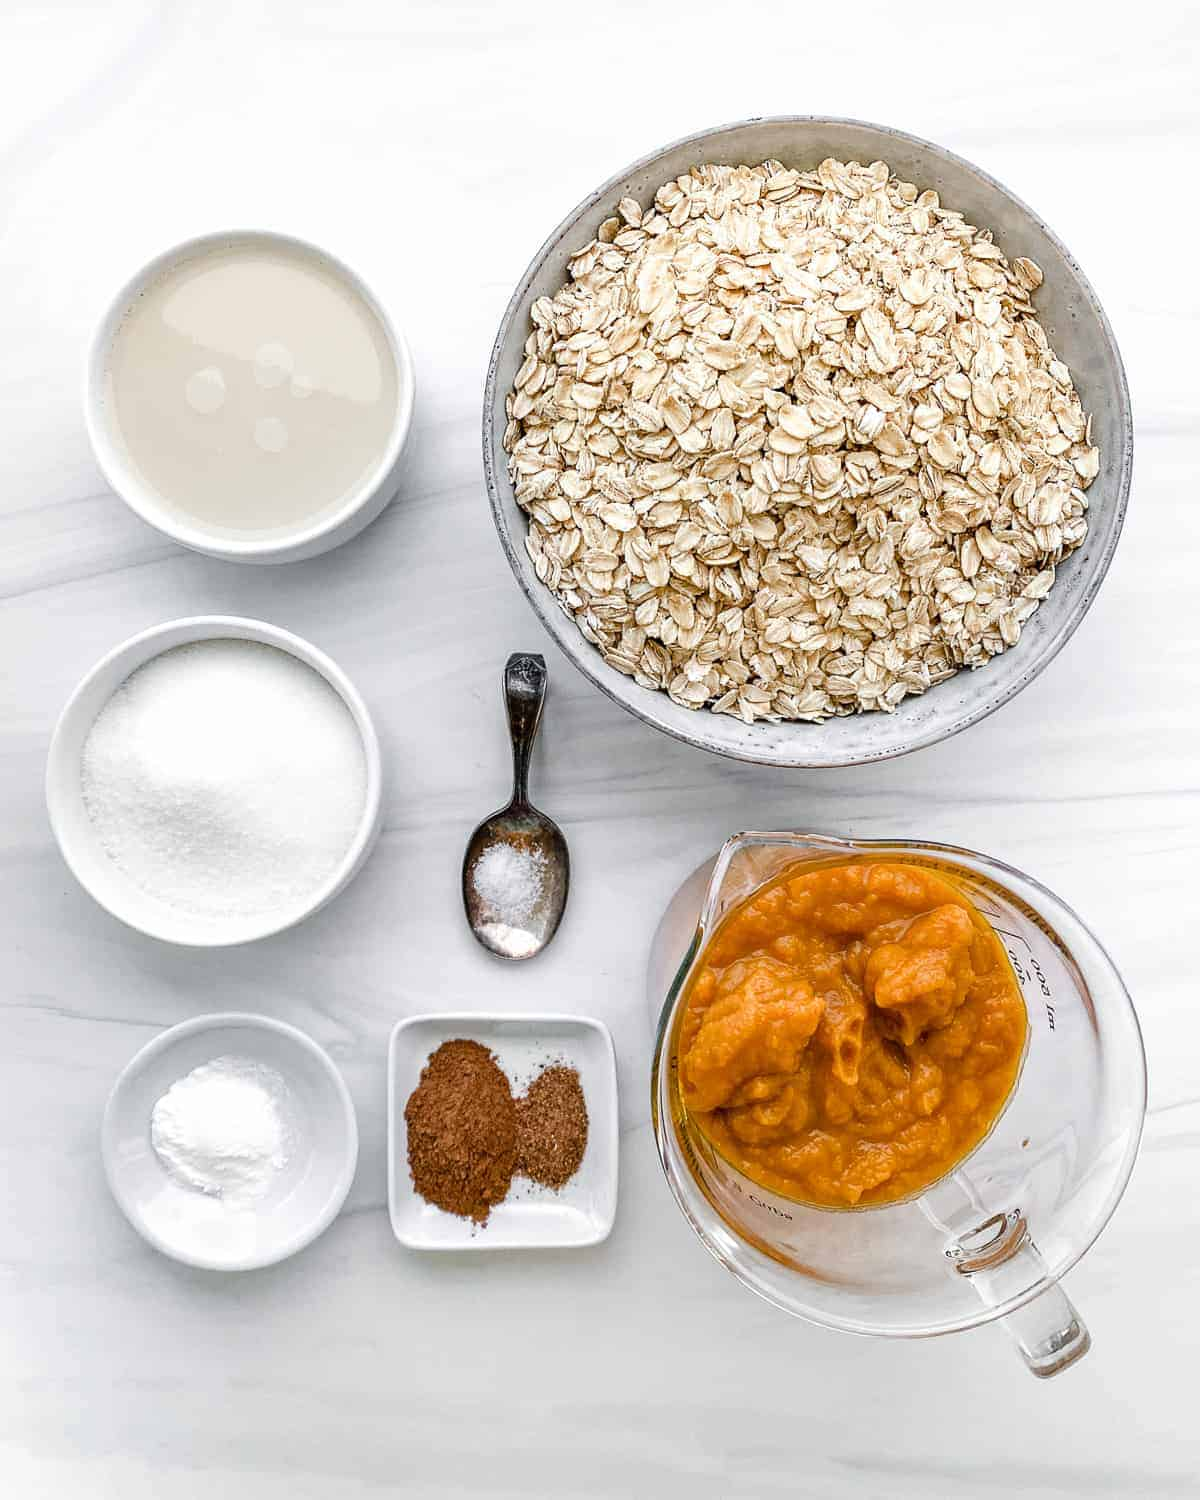 ingredients for pumpkin oatmeal cookies against a white marble surface